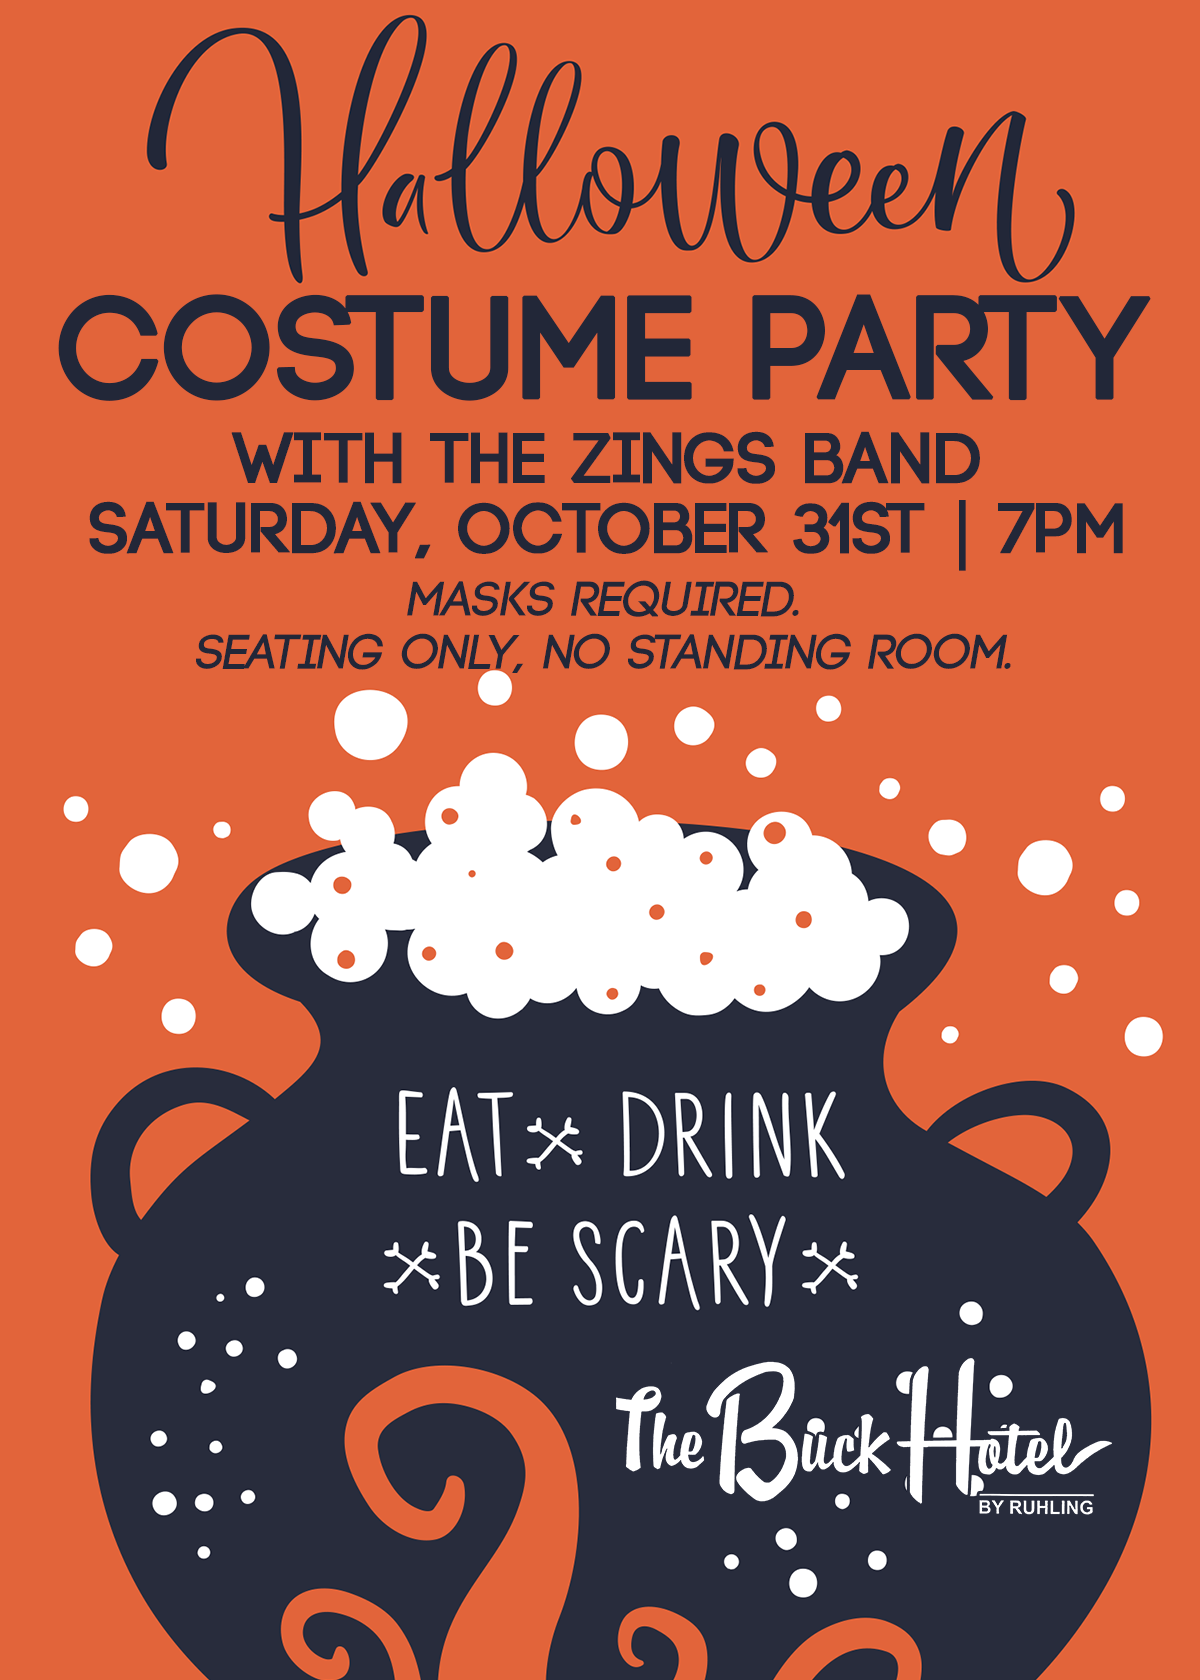 Halloween Costume Party with the Zings Band - Saturday, October 31st | 9pm. Masks required. Seating only, no standing room. Eat, Drink, Be scary - the Buck Hotel